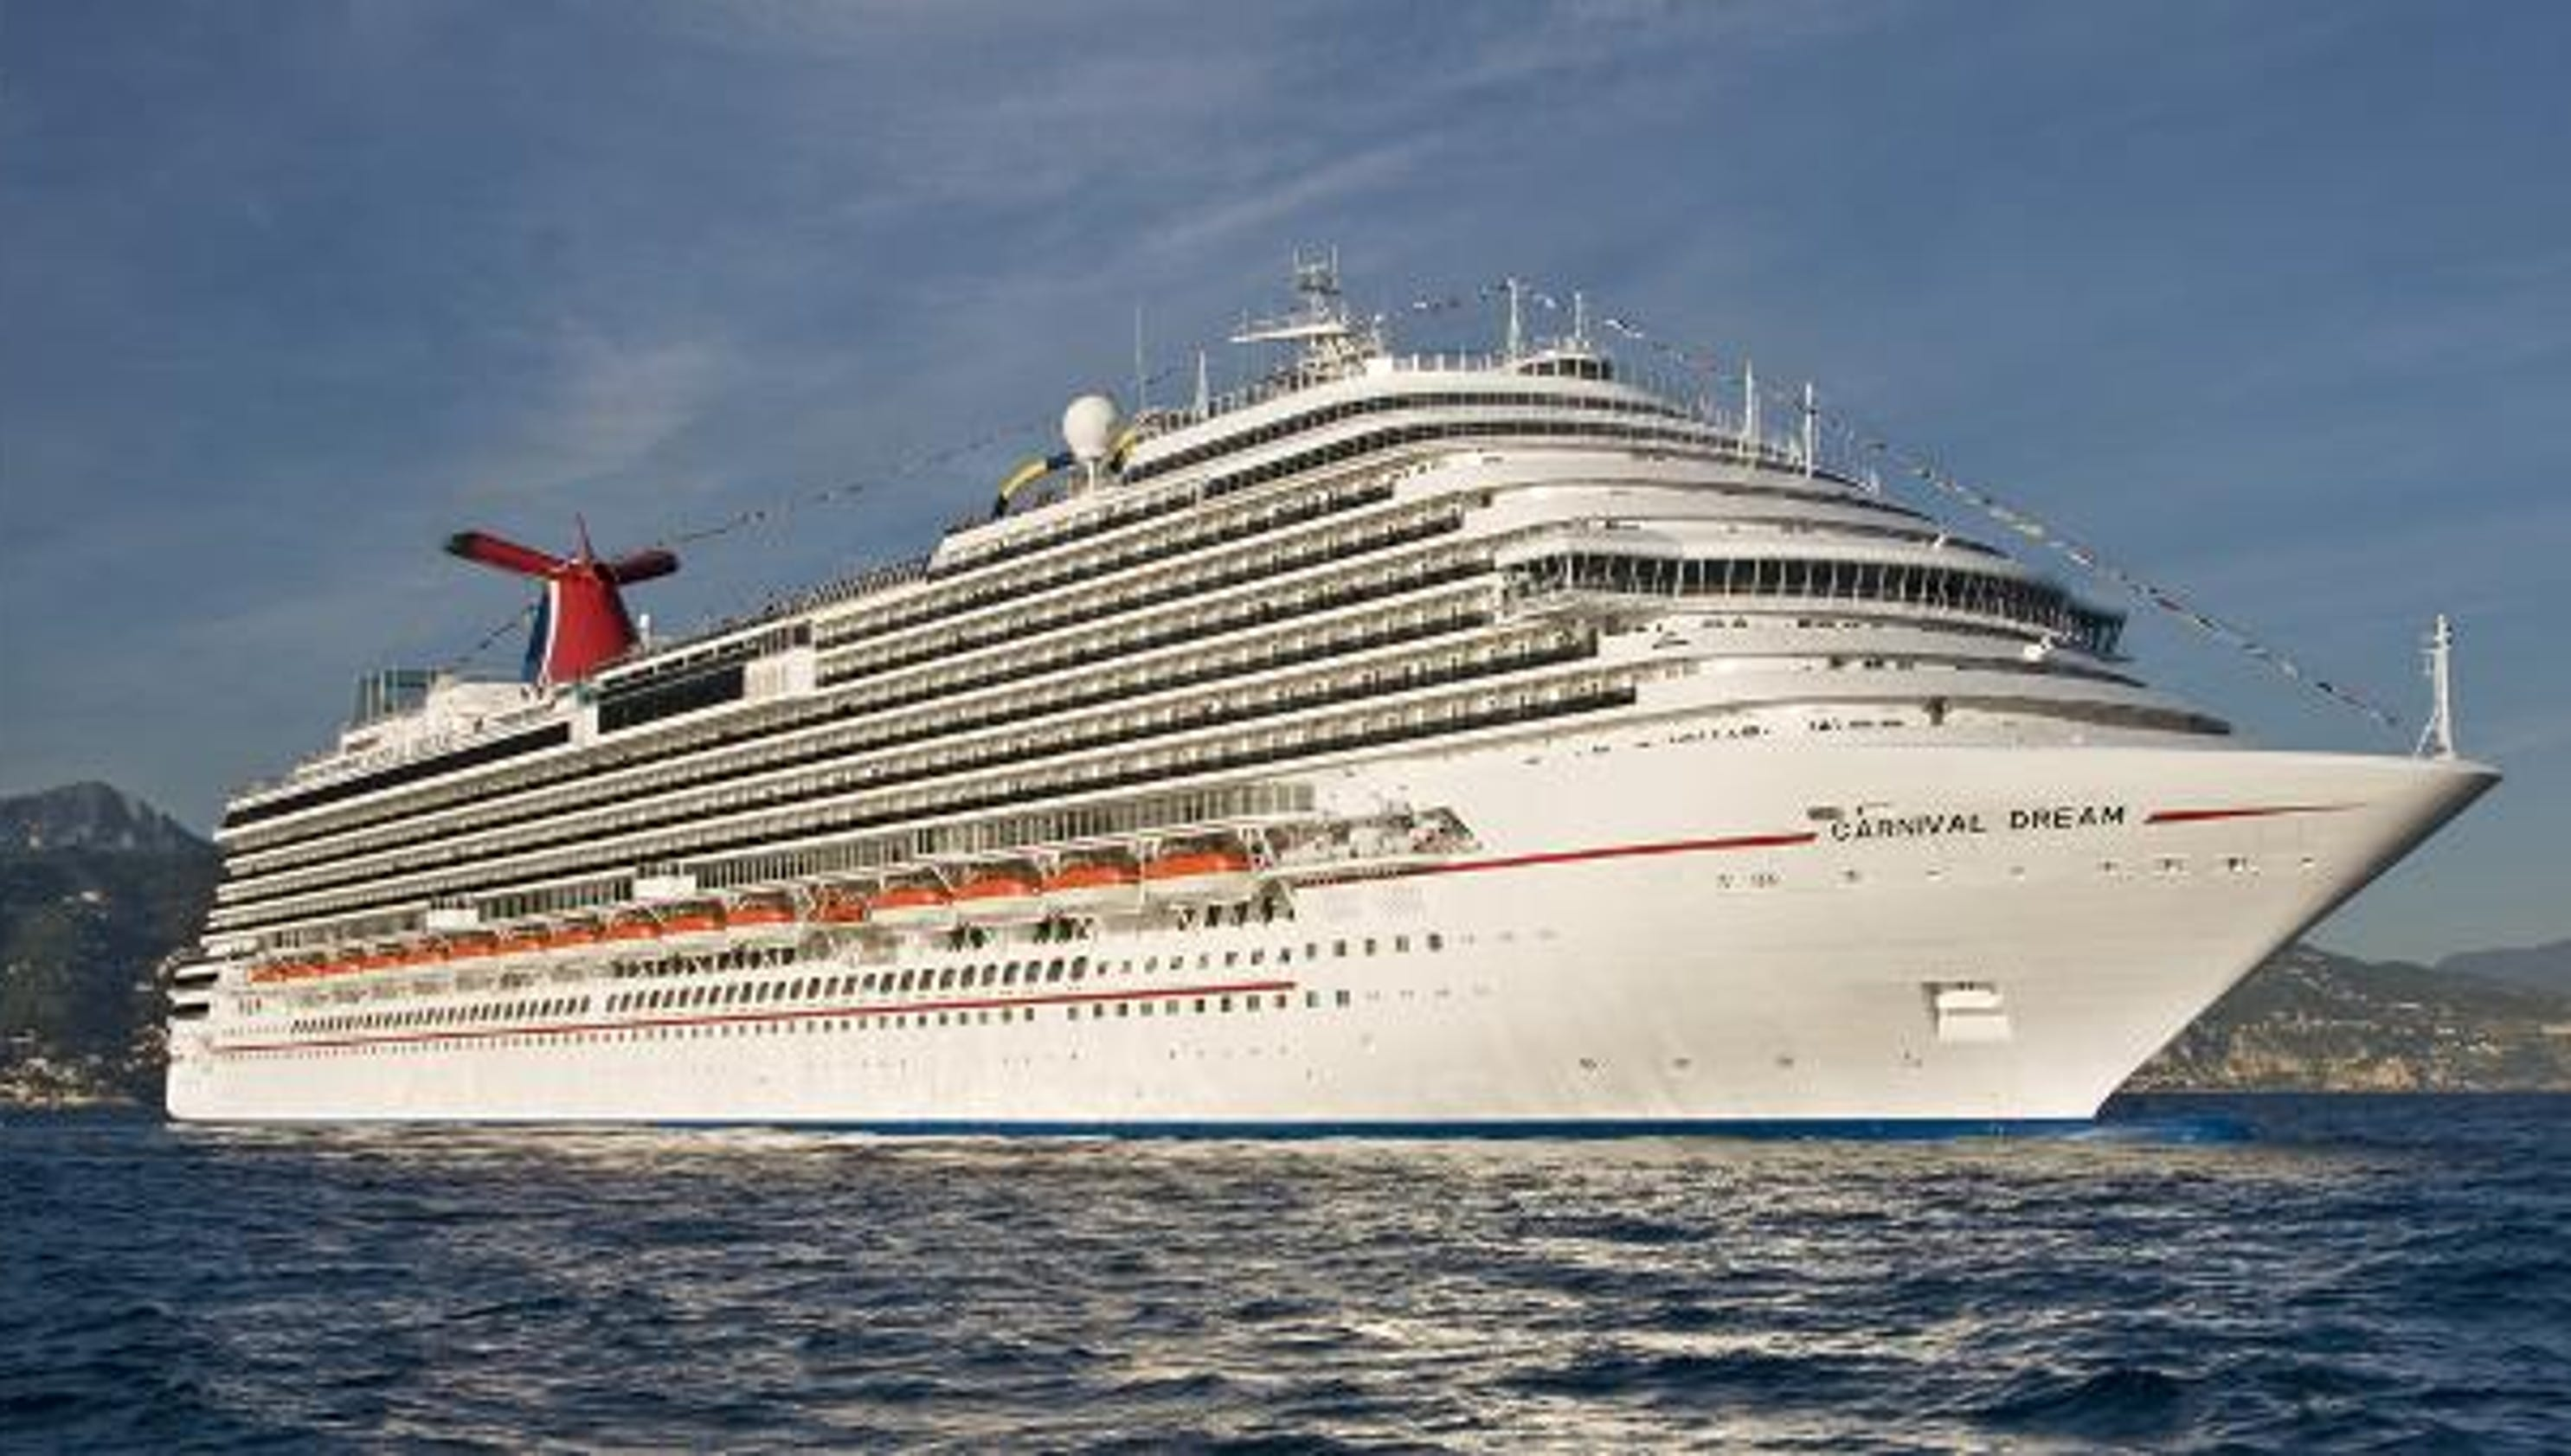 carnival cruise lines today Apply now  2x funpoints on world's leading cruise line purchases2  2x  funpoints on carnival cruise line and world's leading cruise lines purchases 2.